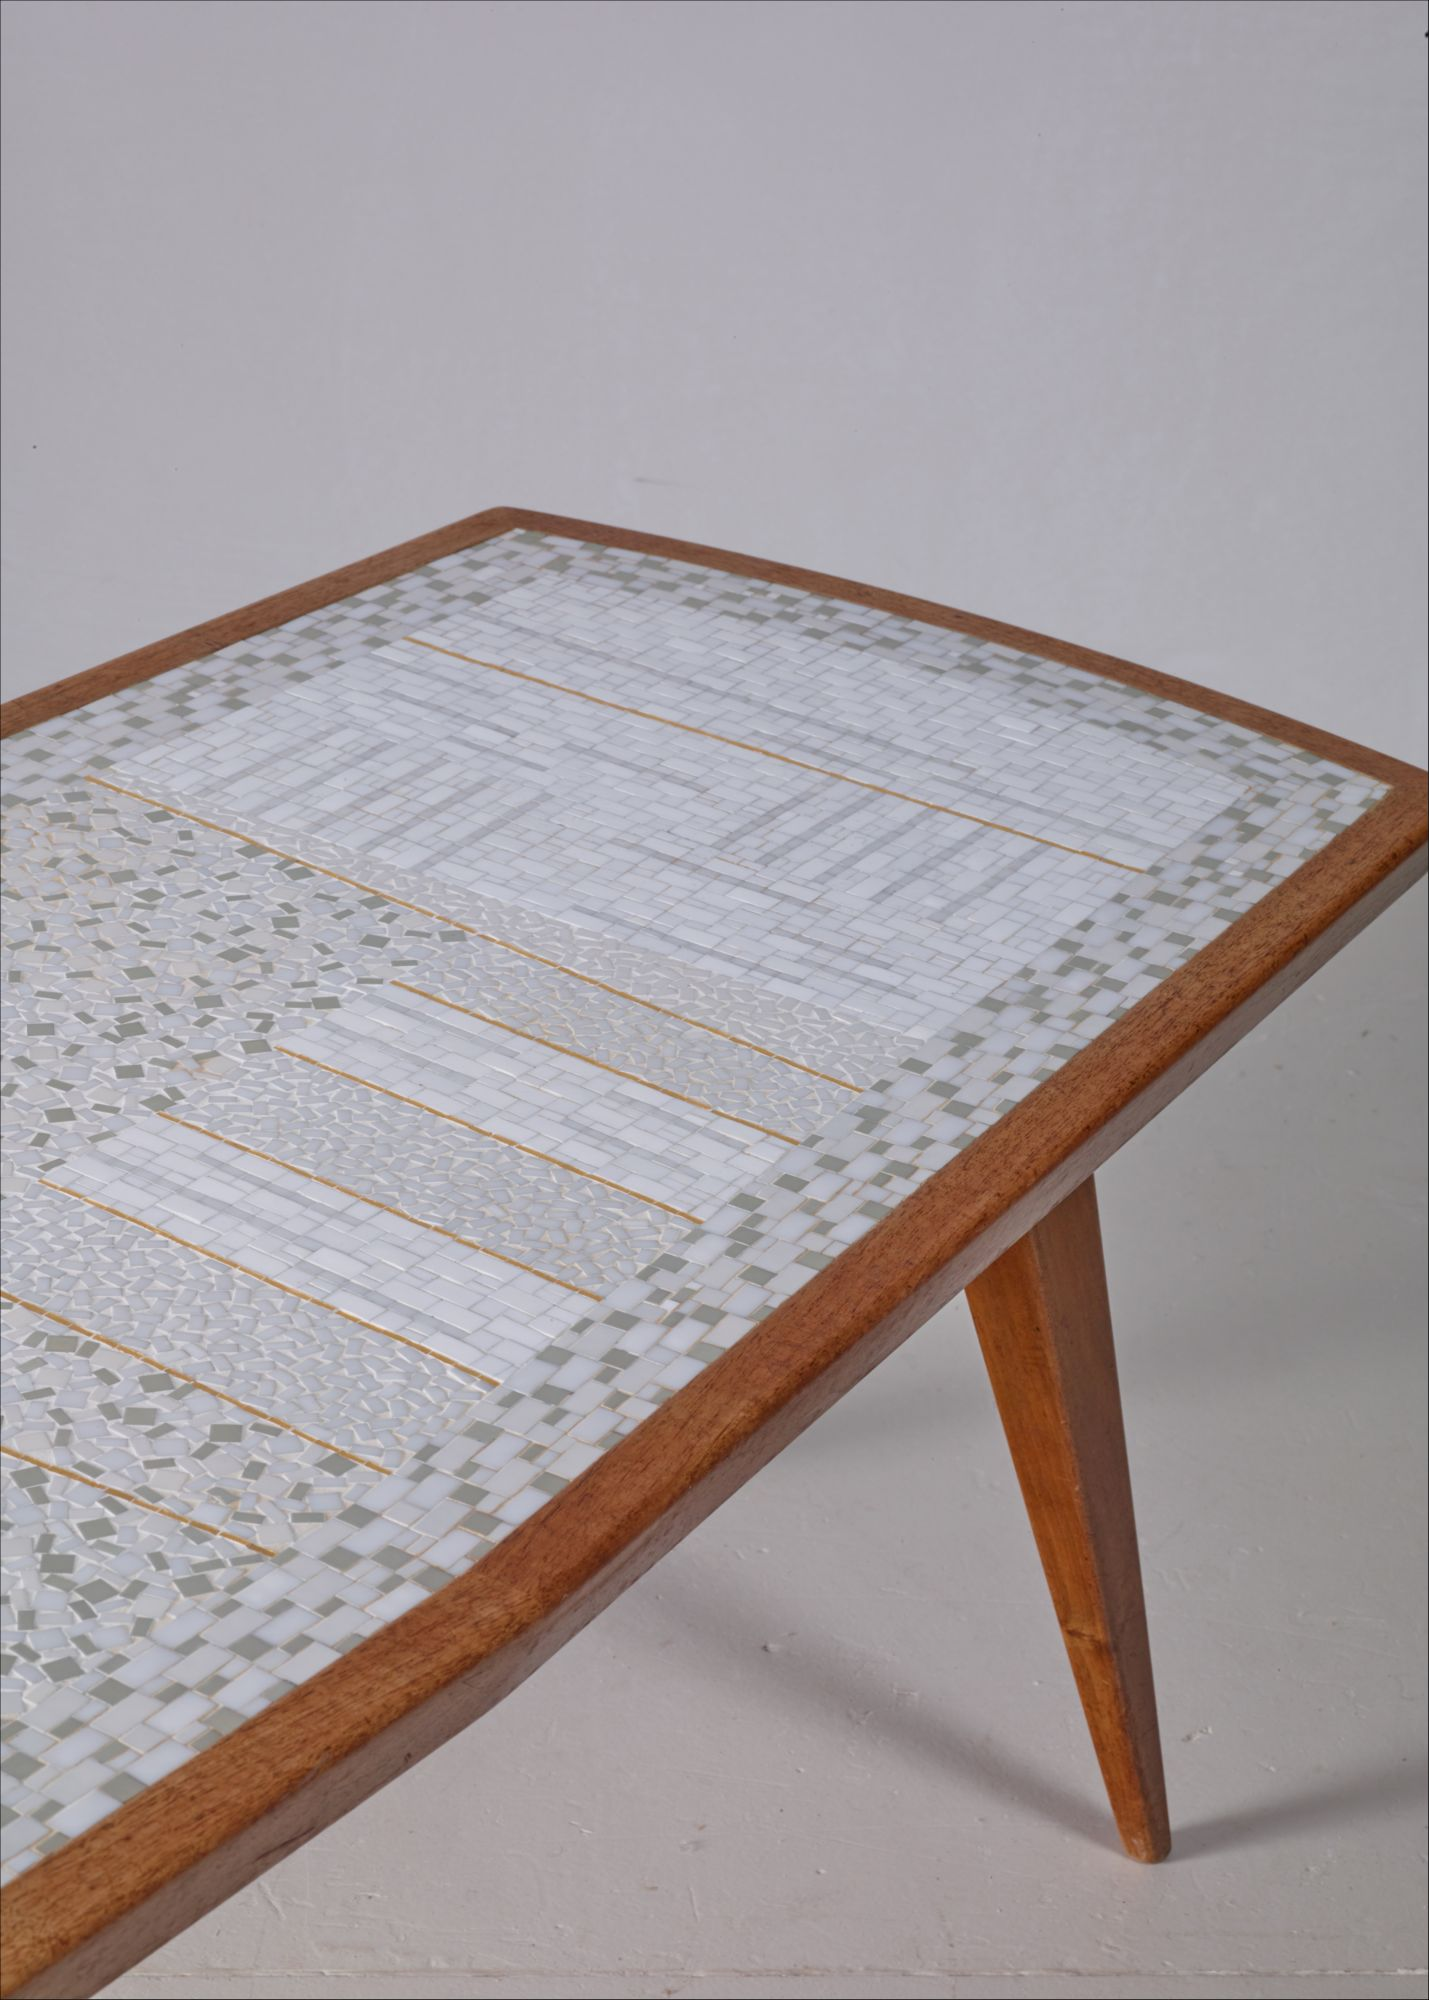 - Berthold Muller Rectangular Mosaic Coffee Table, Germany